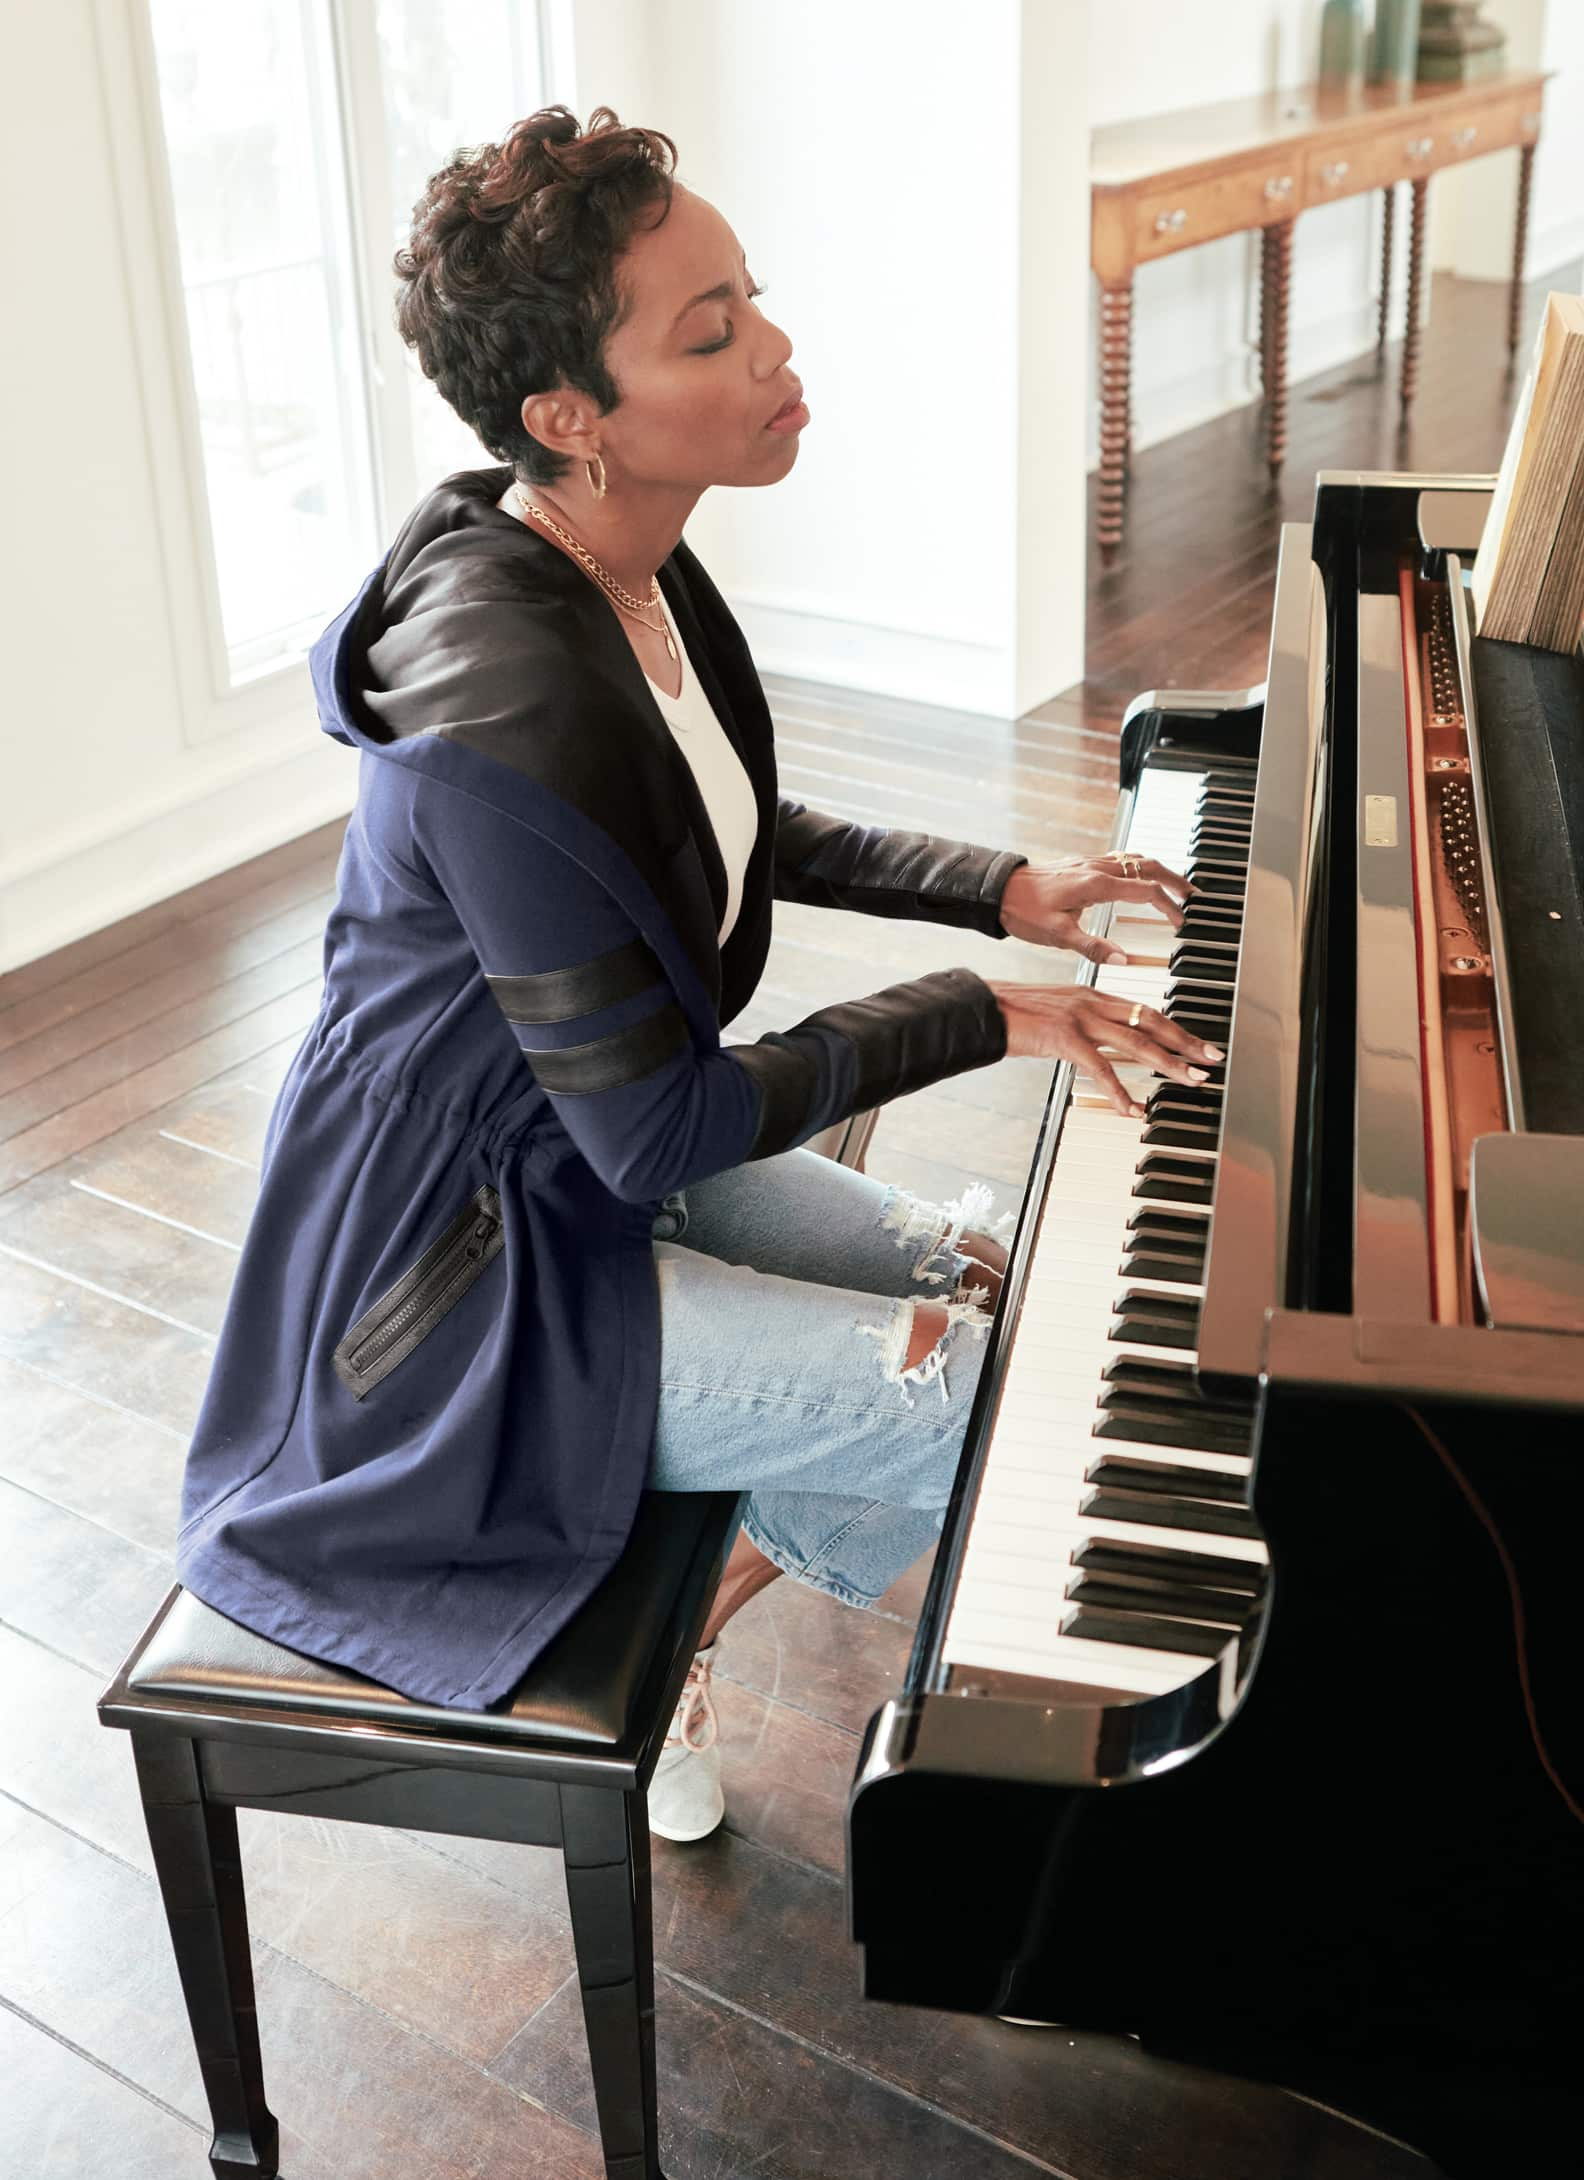 Woman at piano wearing jacket and jeans